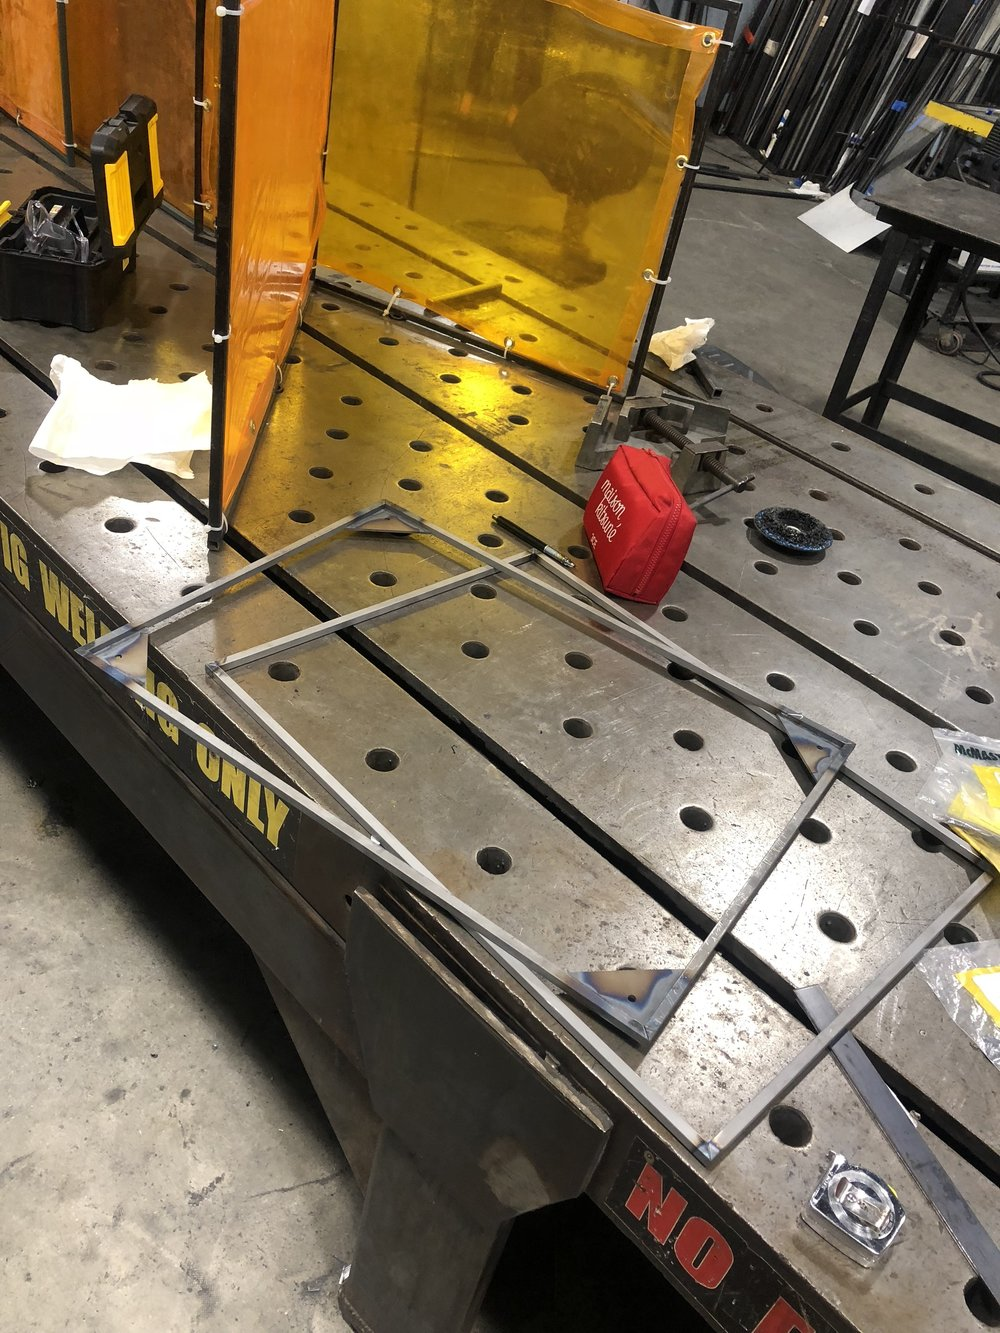 1. 3/8 Square tubing was cut and MIG welded together to create the seat base structure.